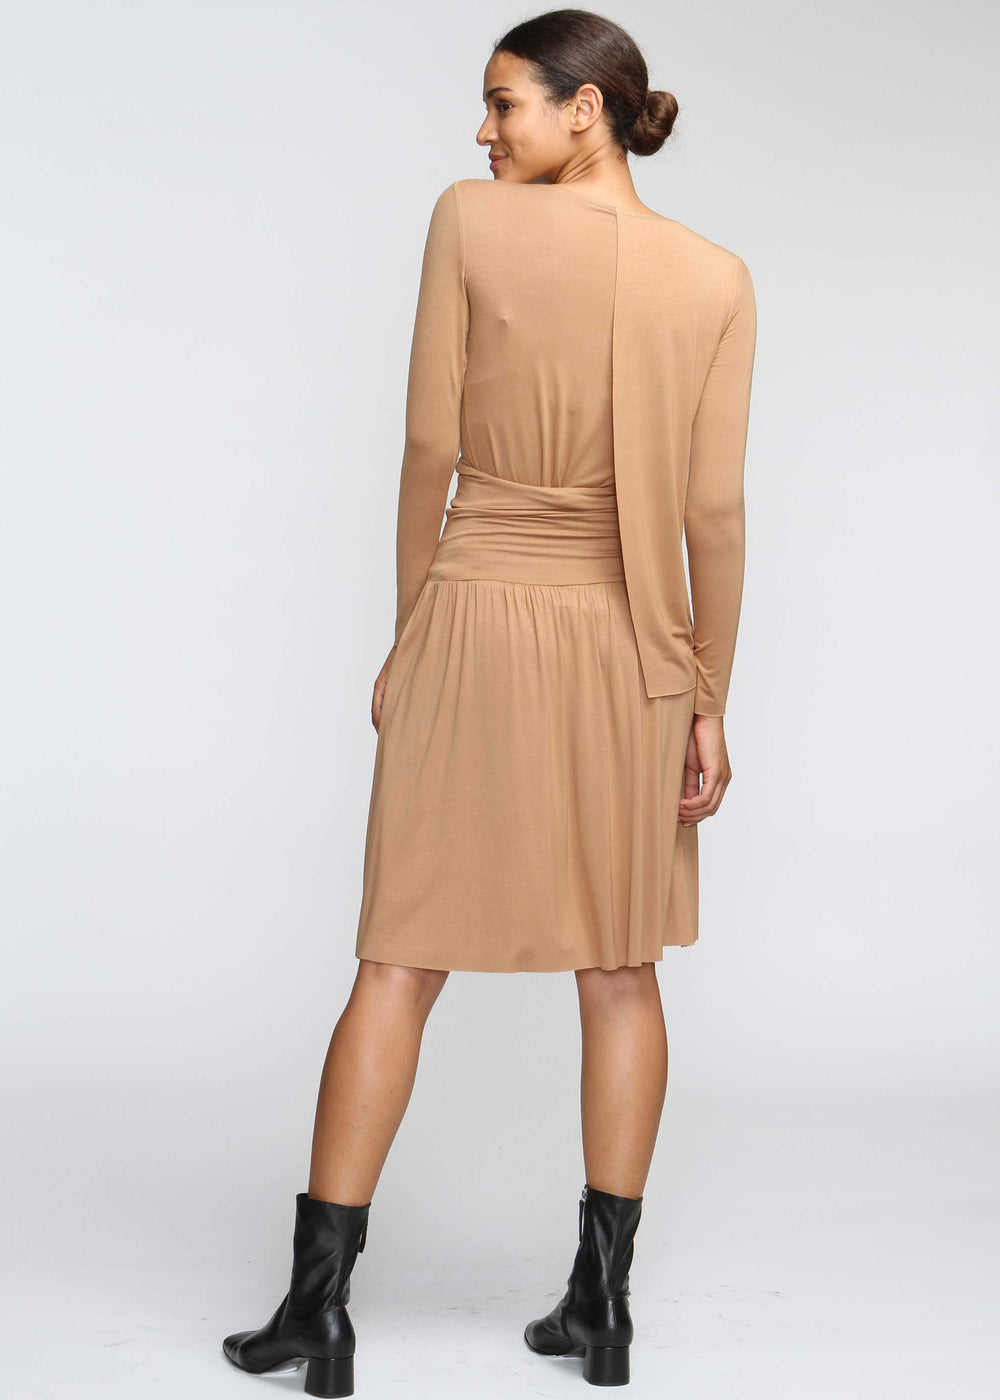 Drape T - Camel - The Frock NYC